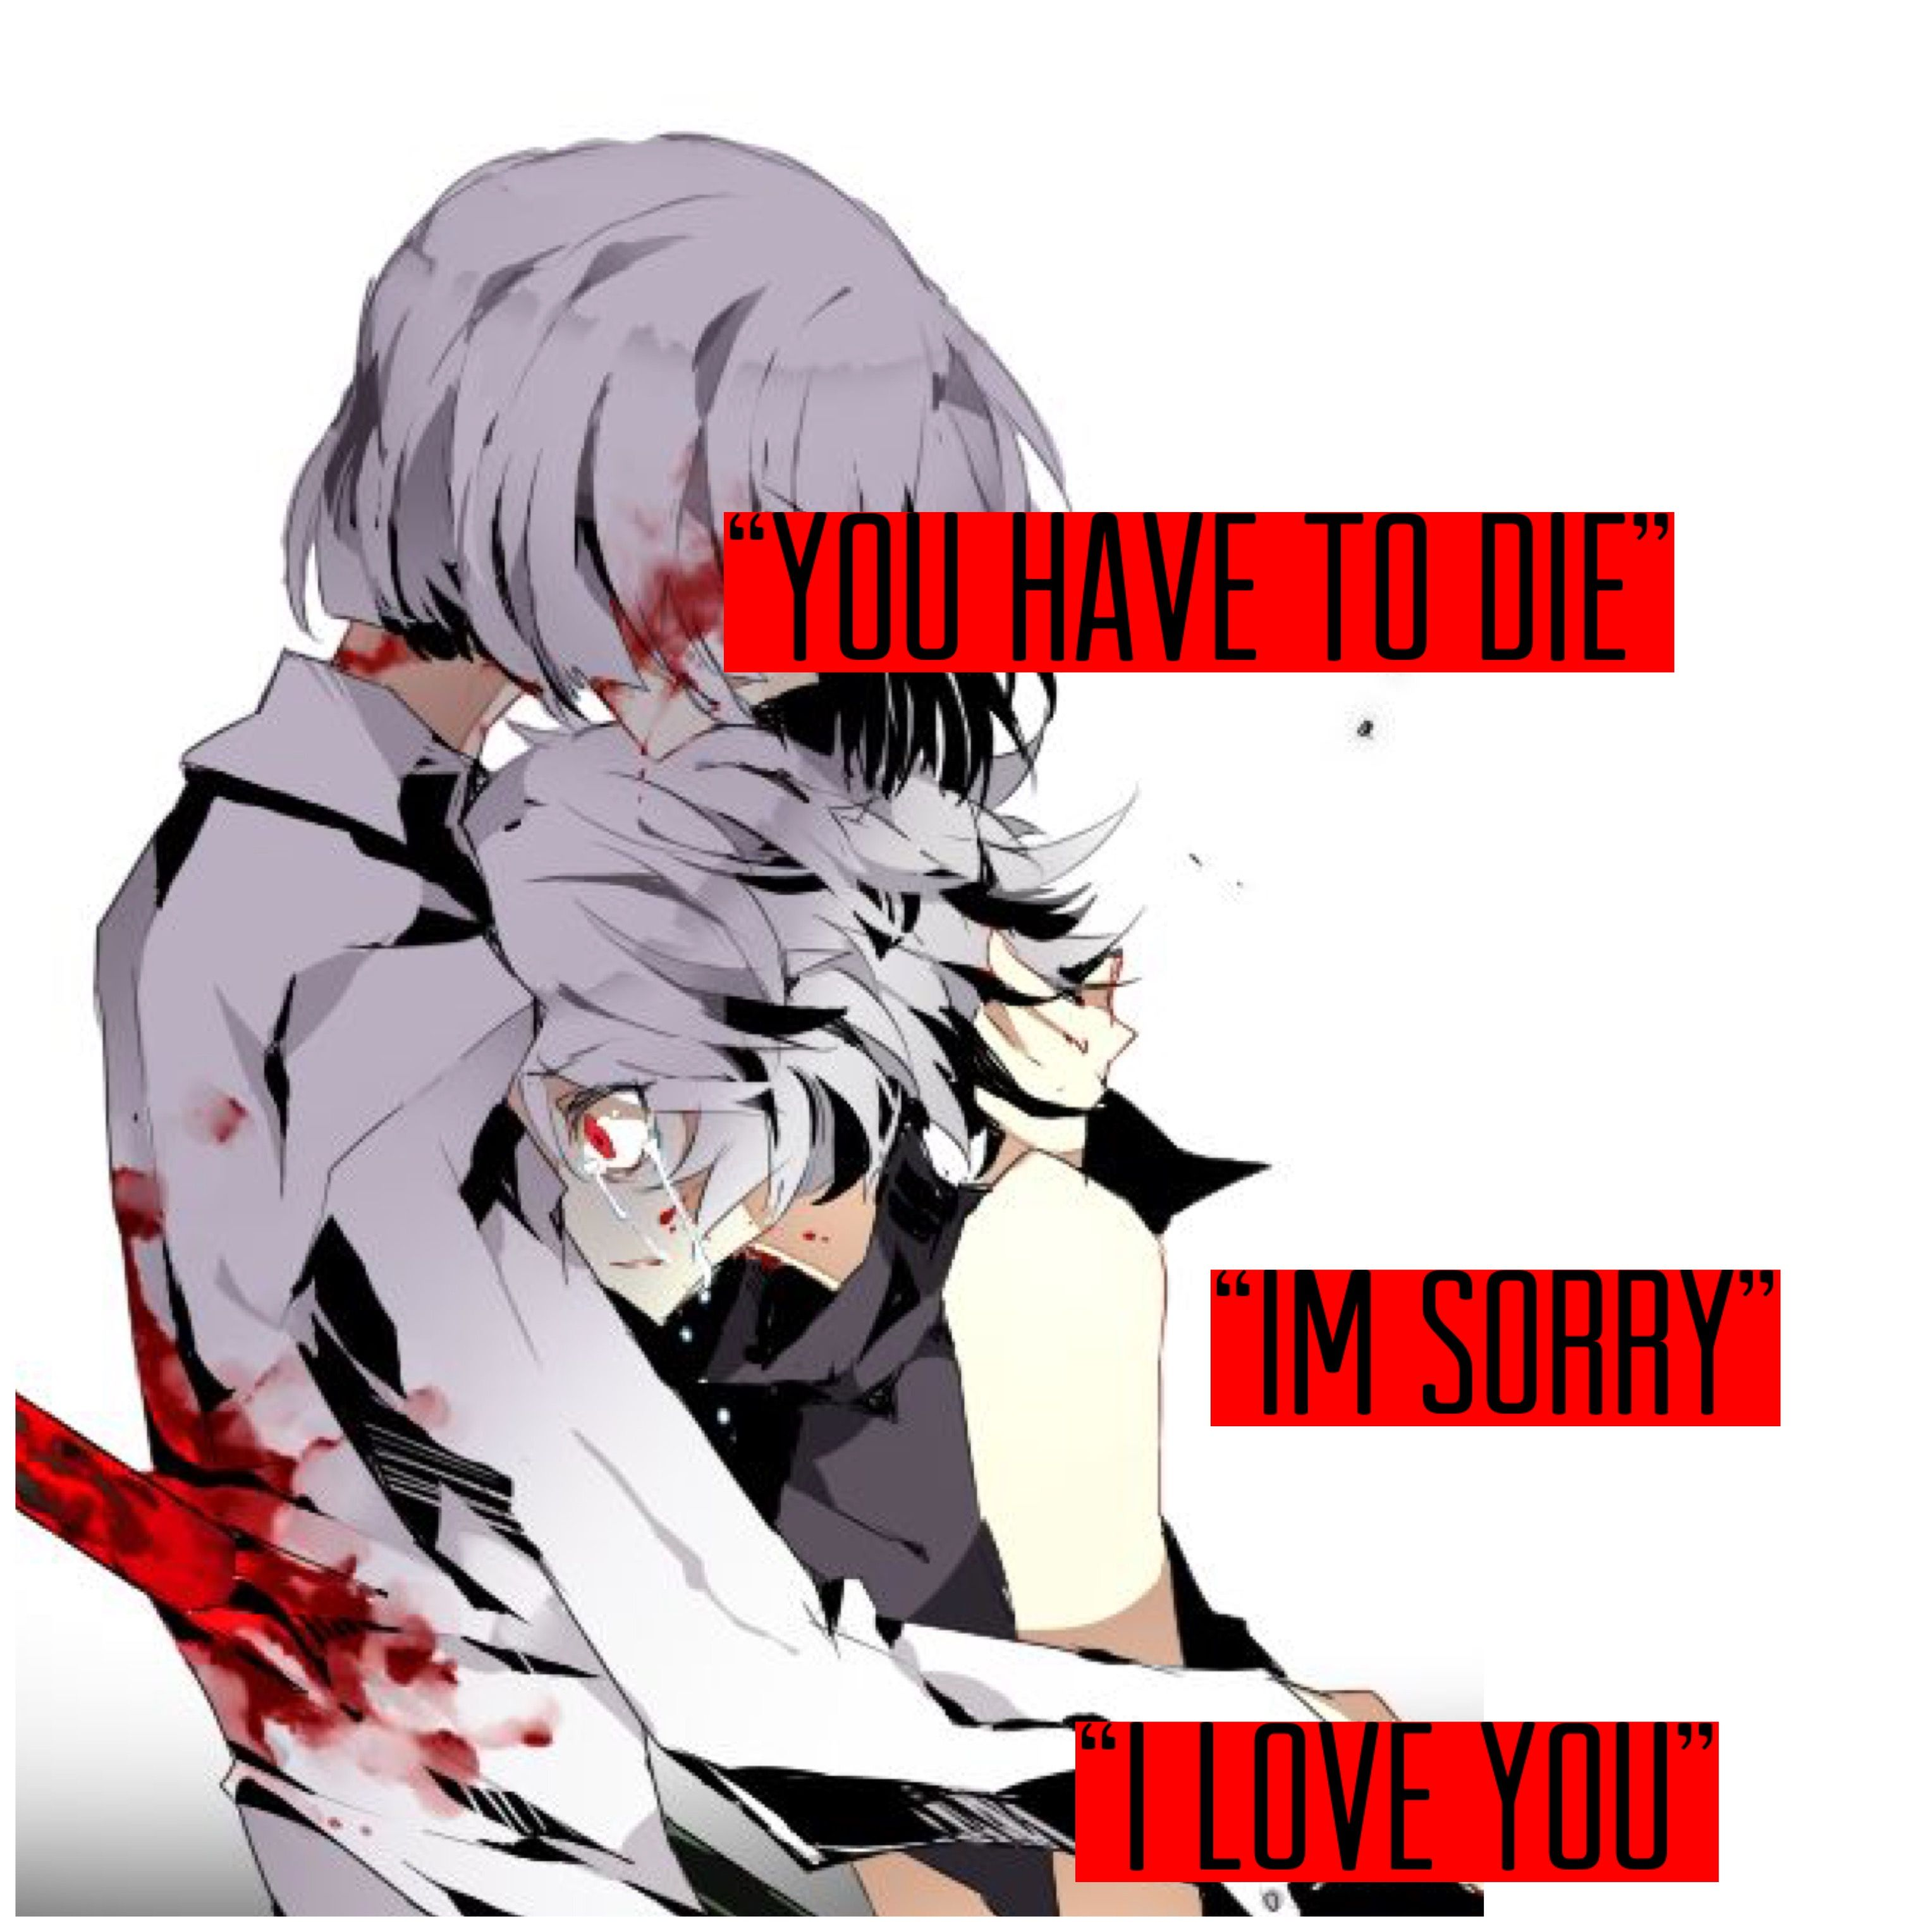 Pin by Clouded Judgement on anime ♥ Anime quotes, Anime